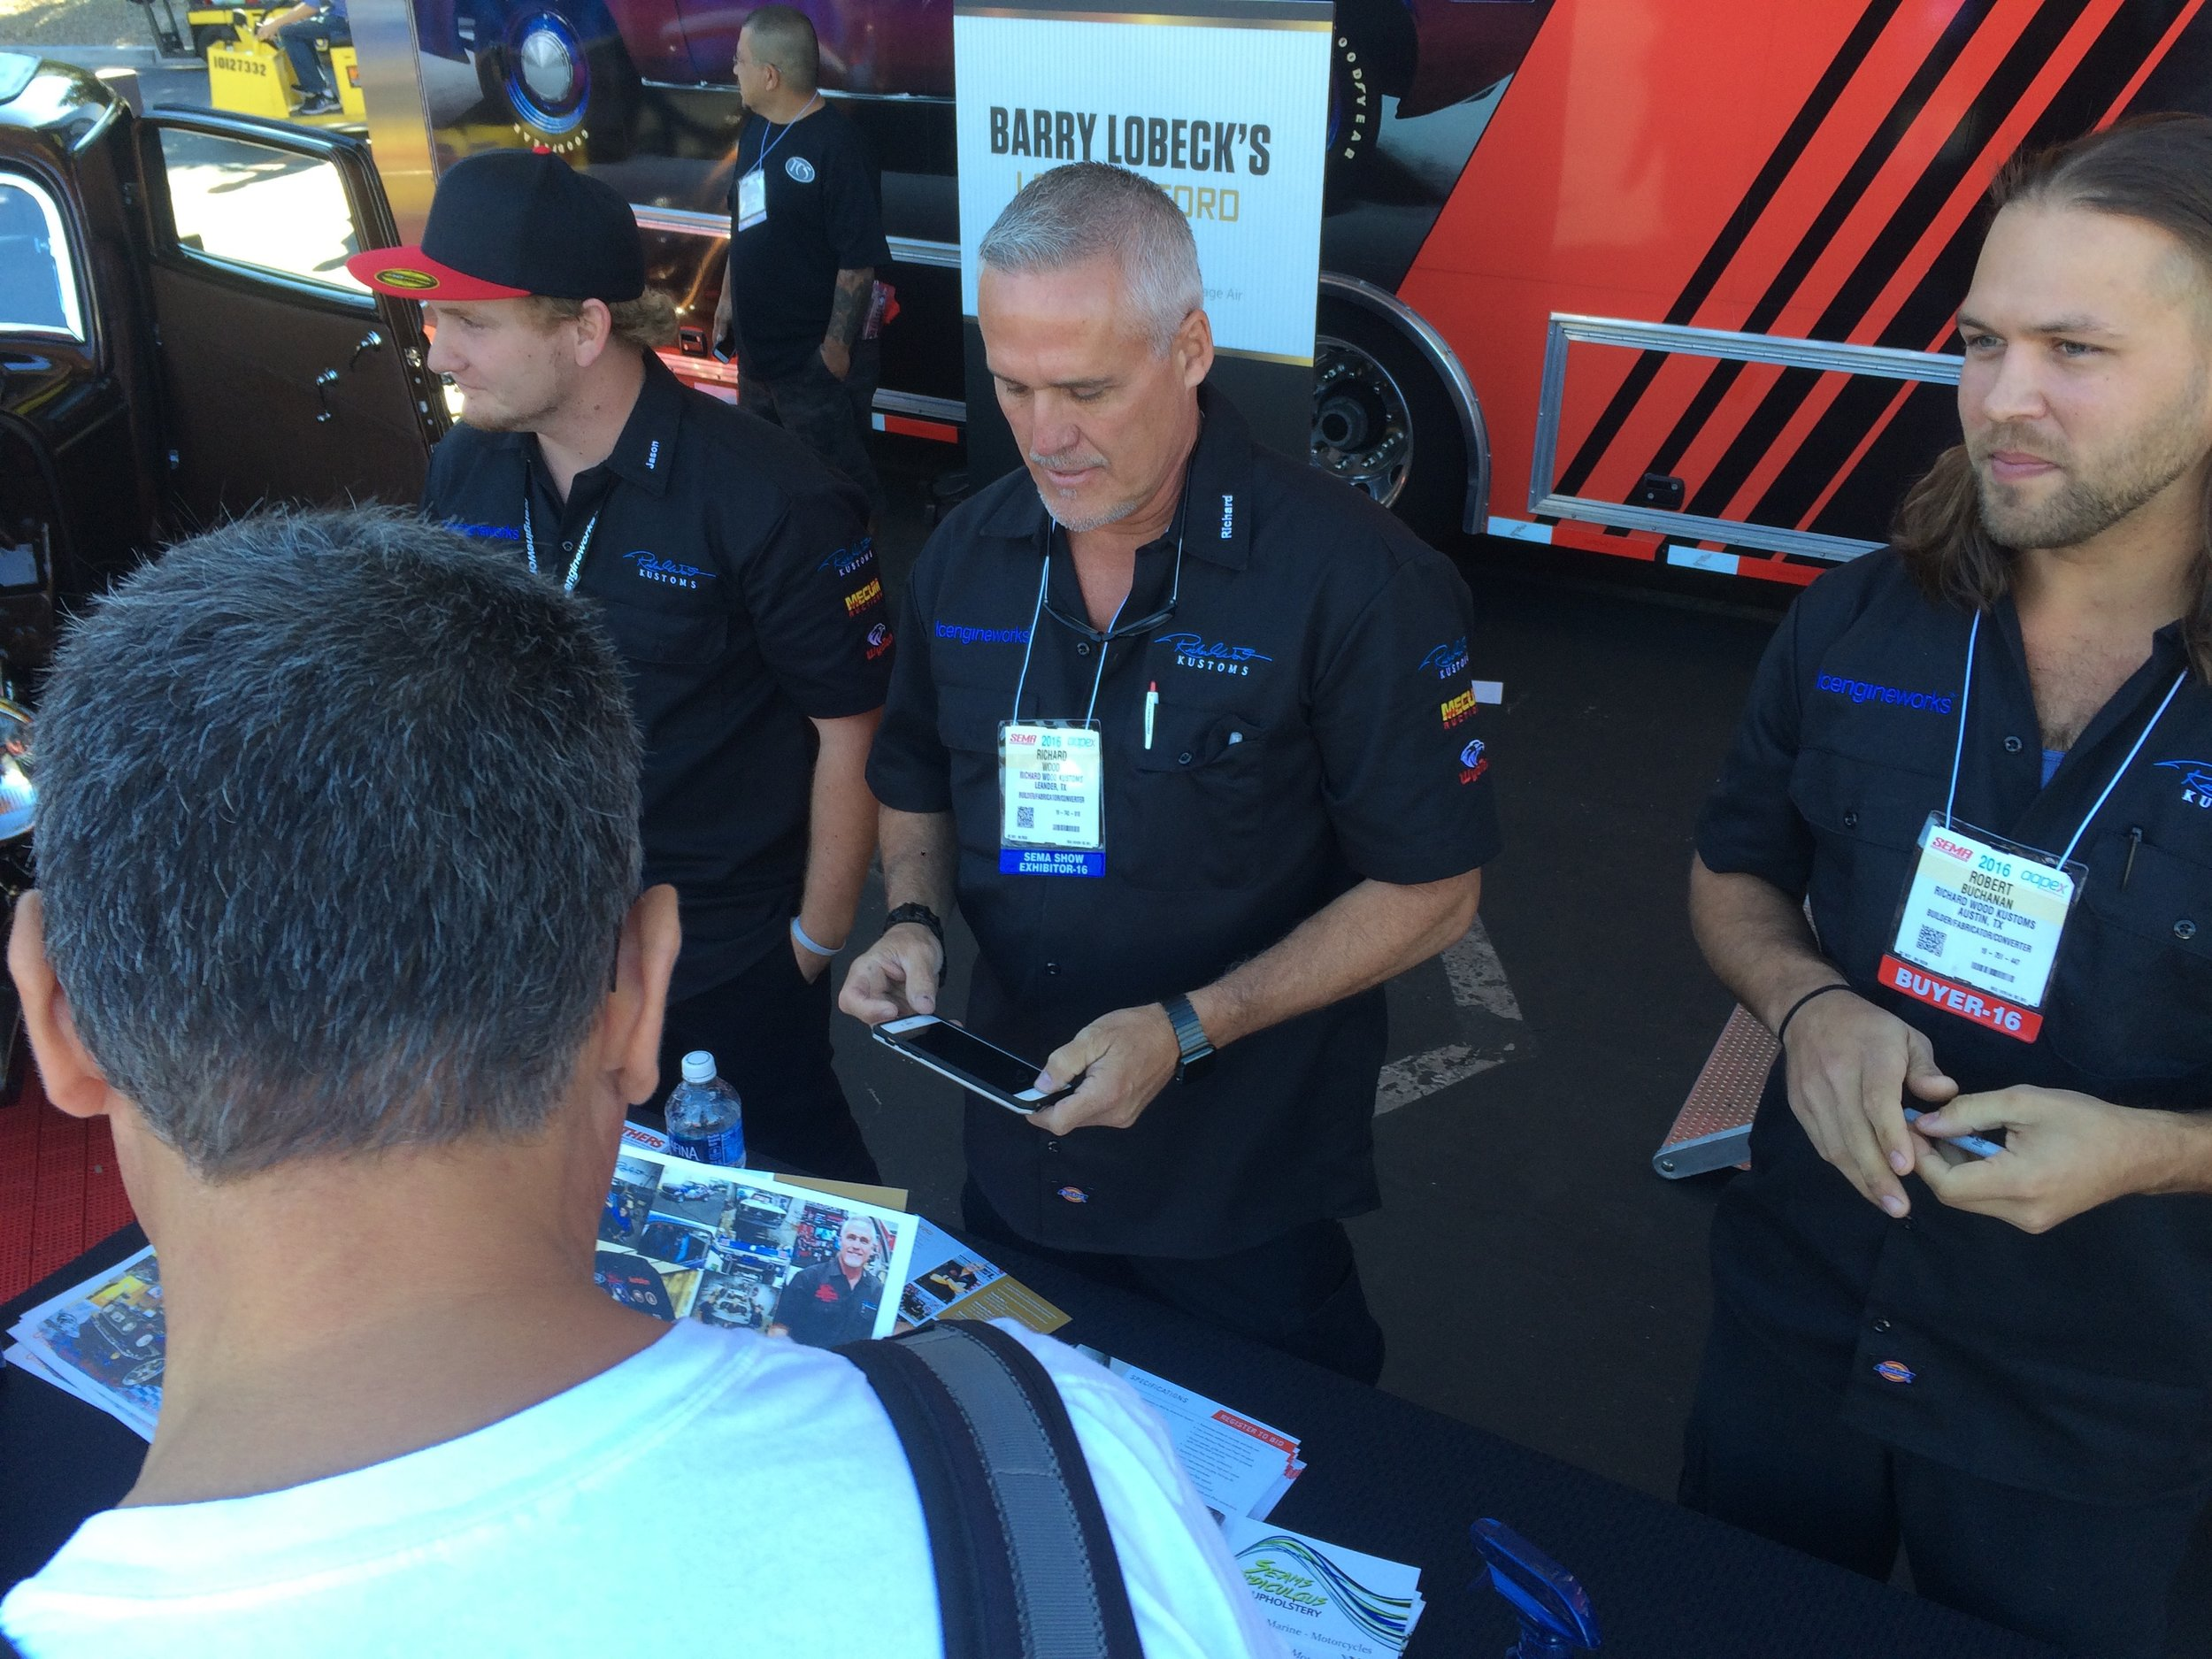 Richard WOod (Center) with lead builder robert buchanan (right) and his team member jason stults (left) at SEMA 2016